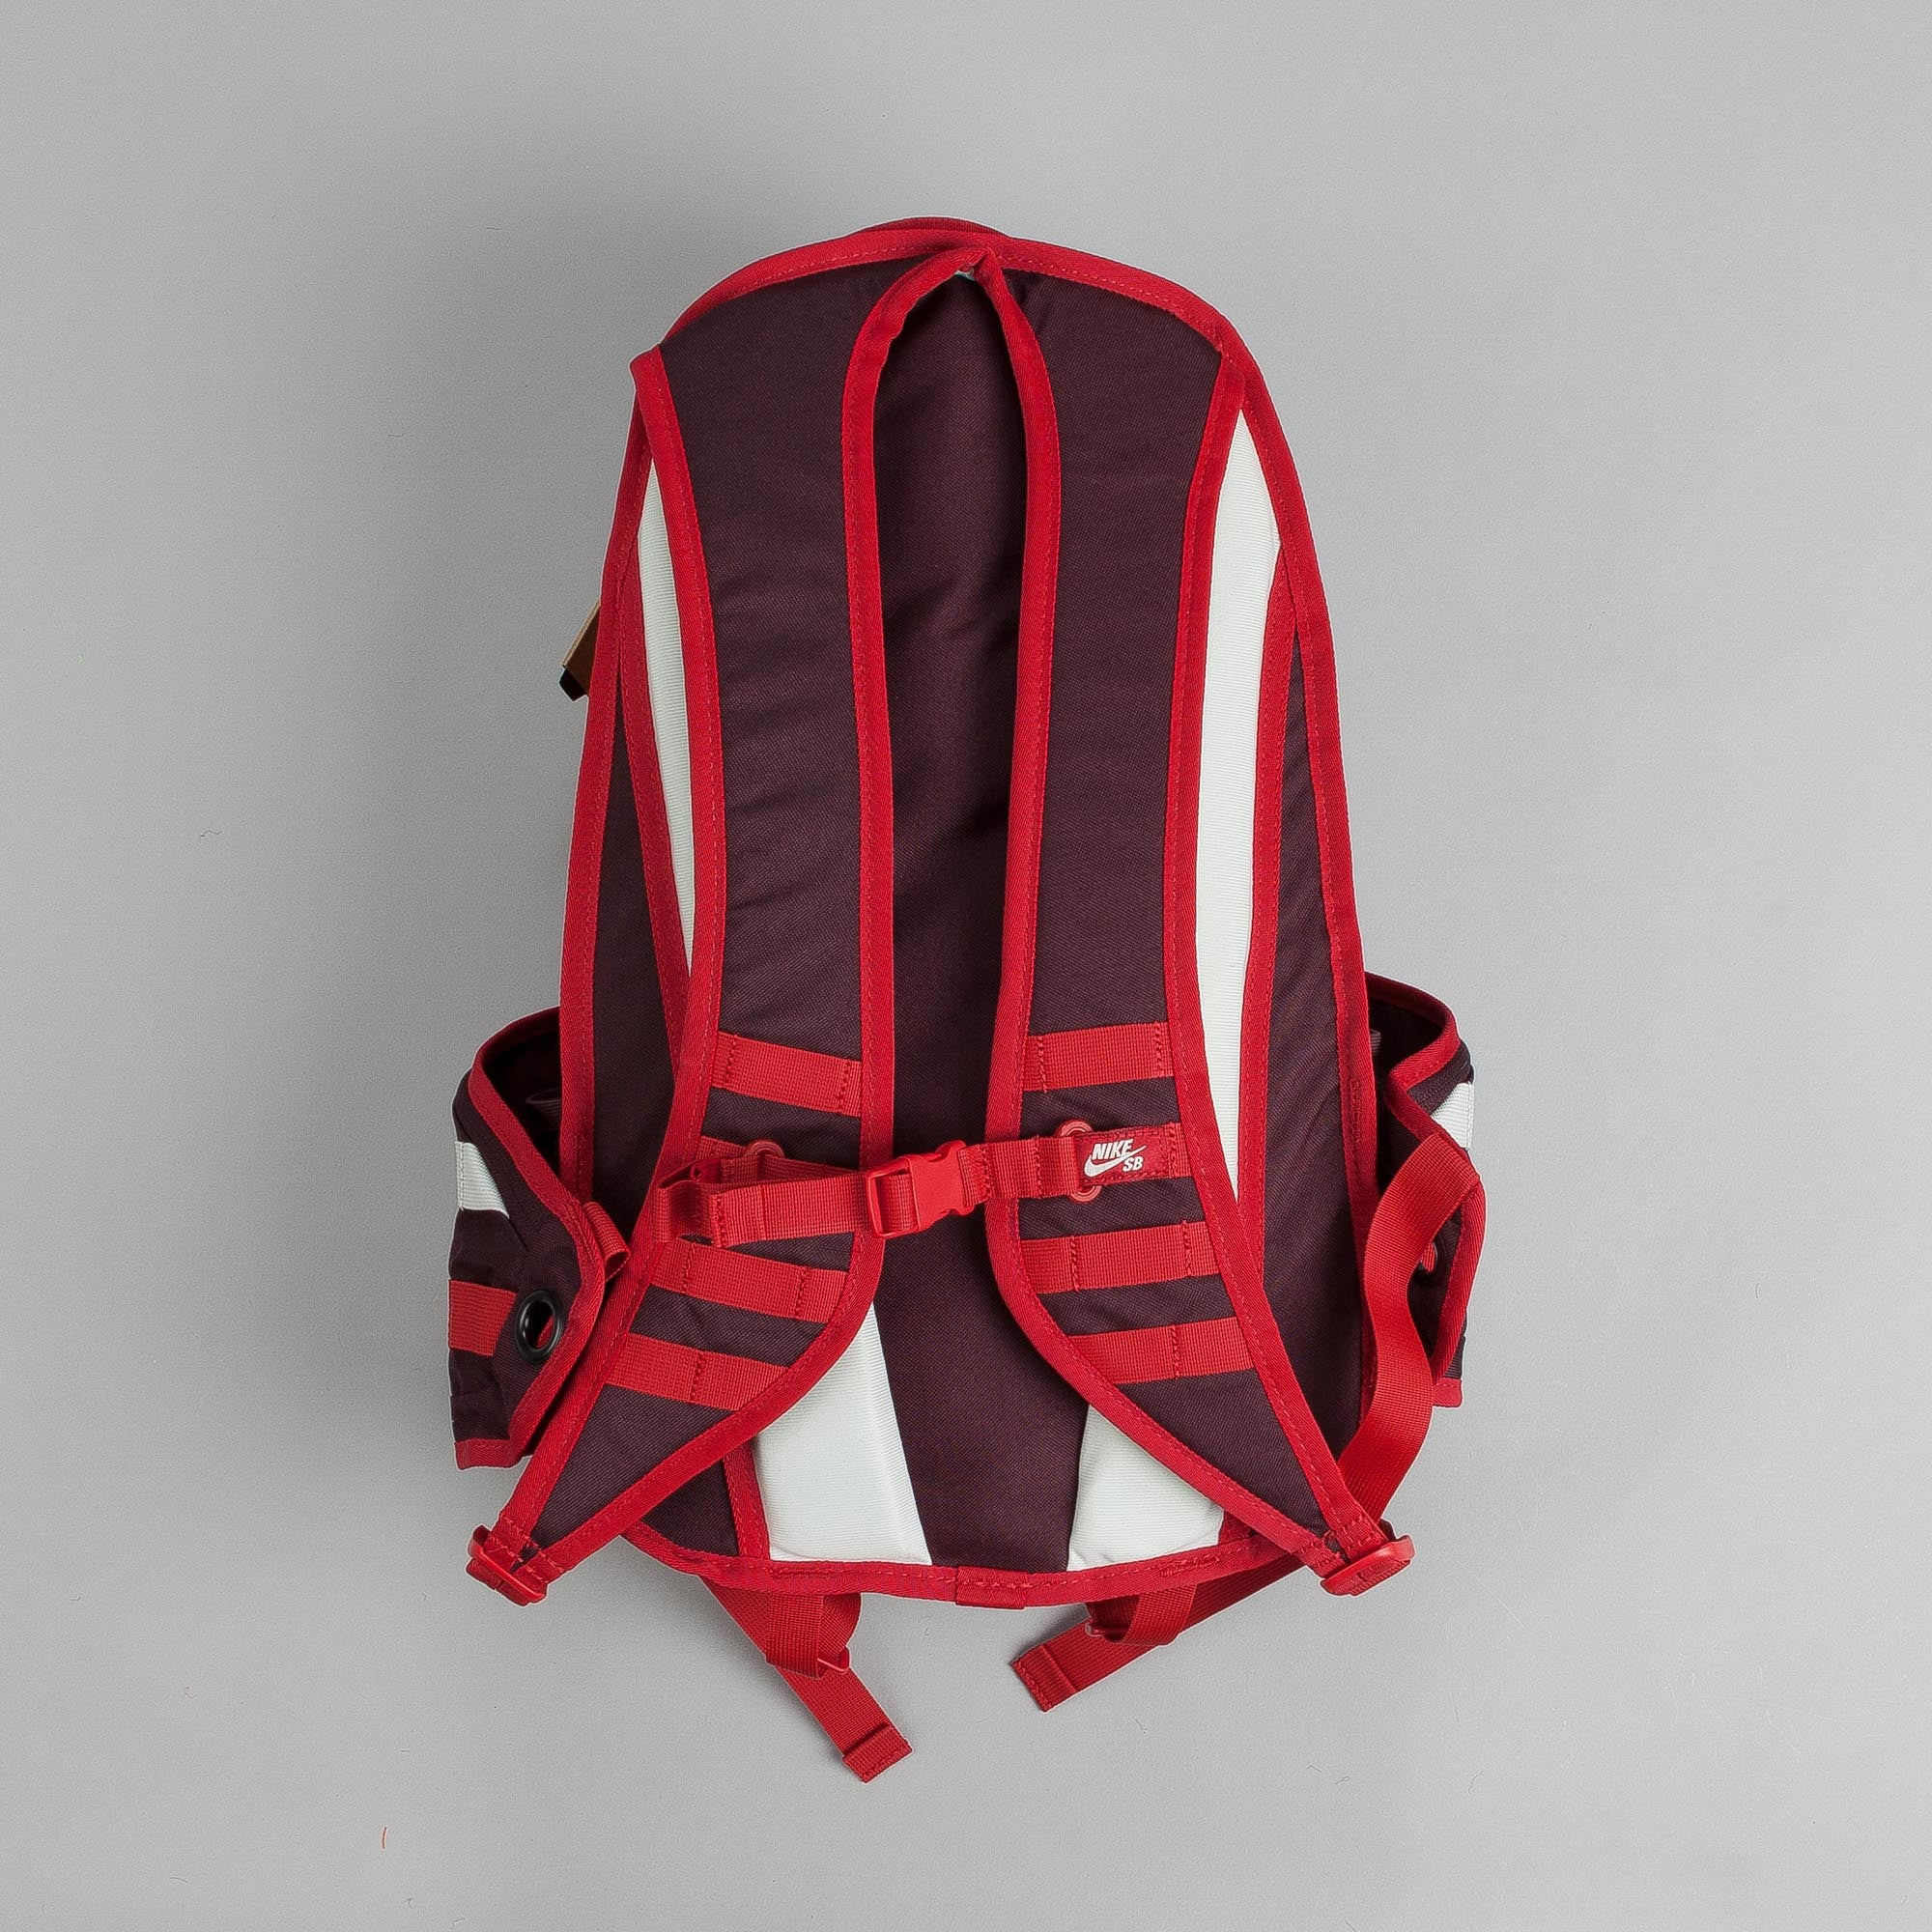 Nike SB RPM Backpack Gym Red / Light Bone - Deep Burgundy